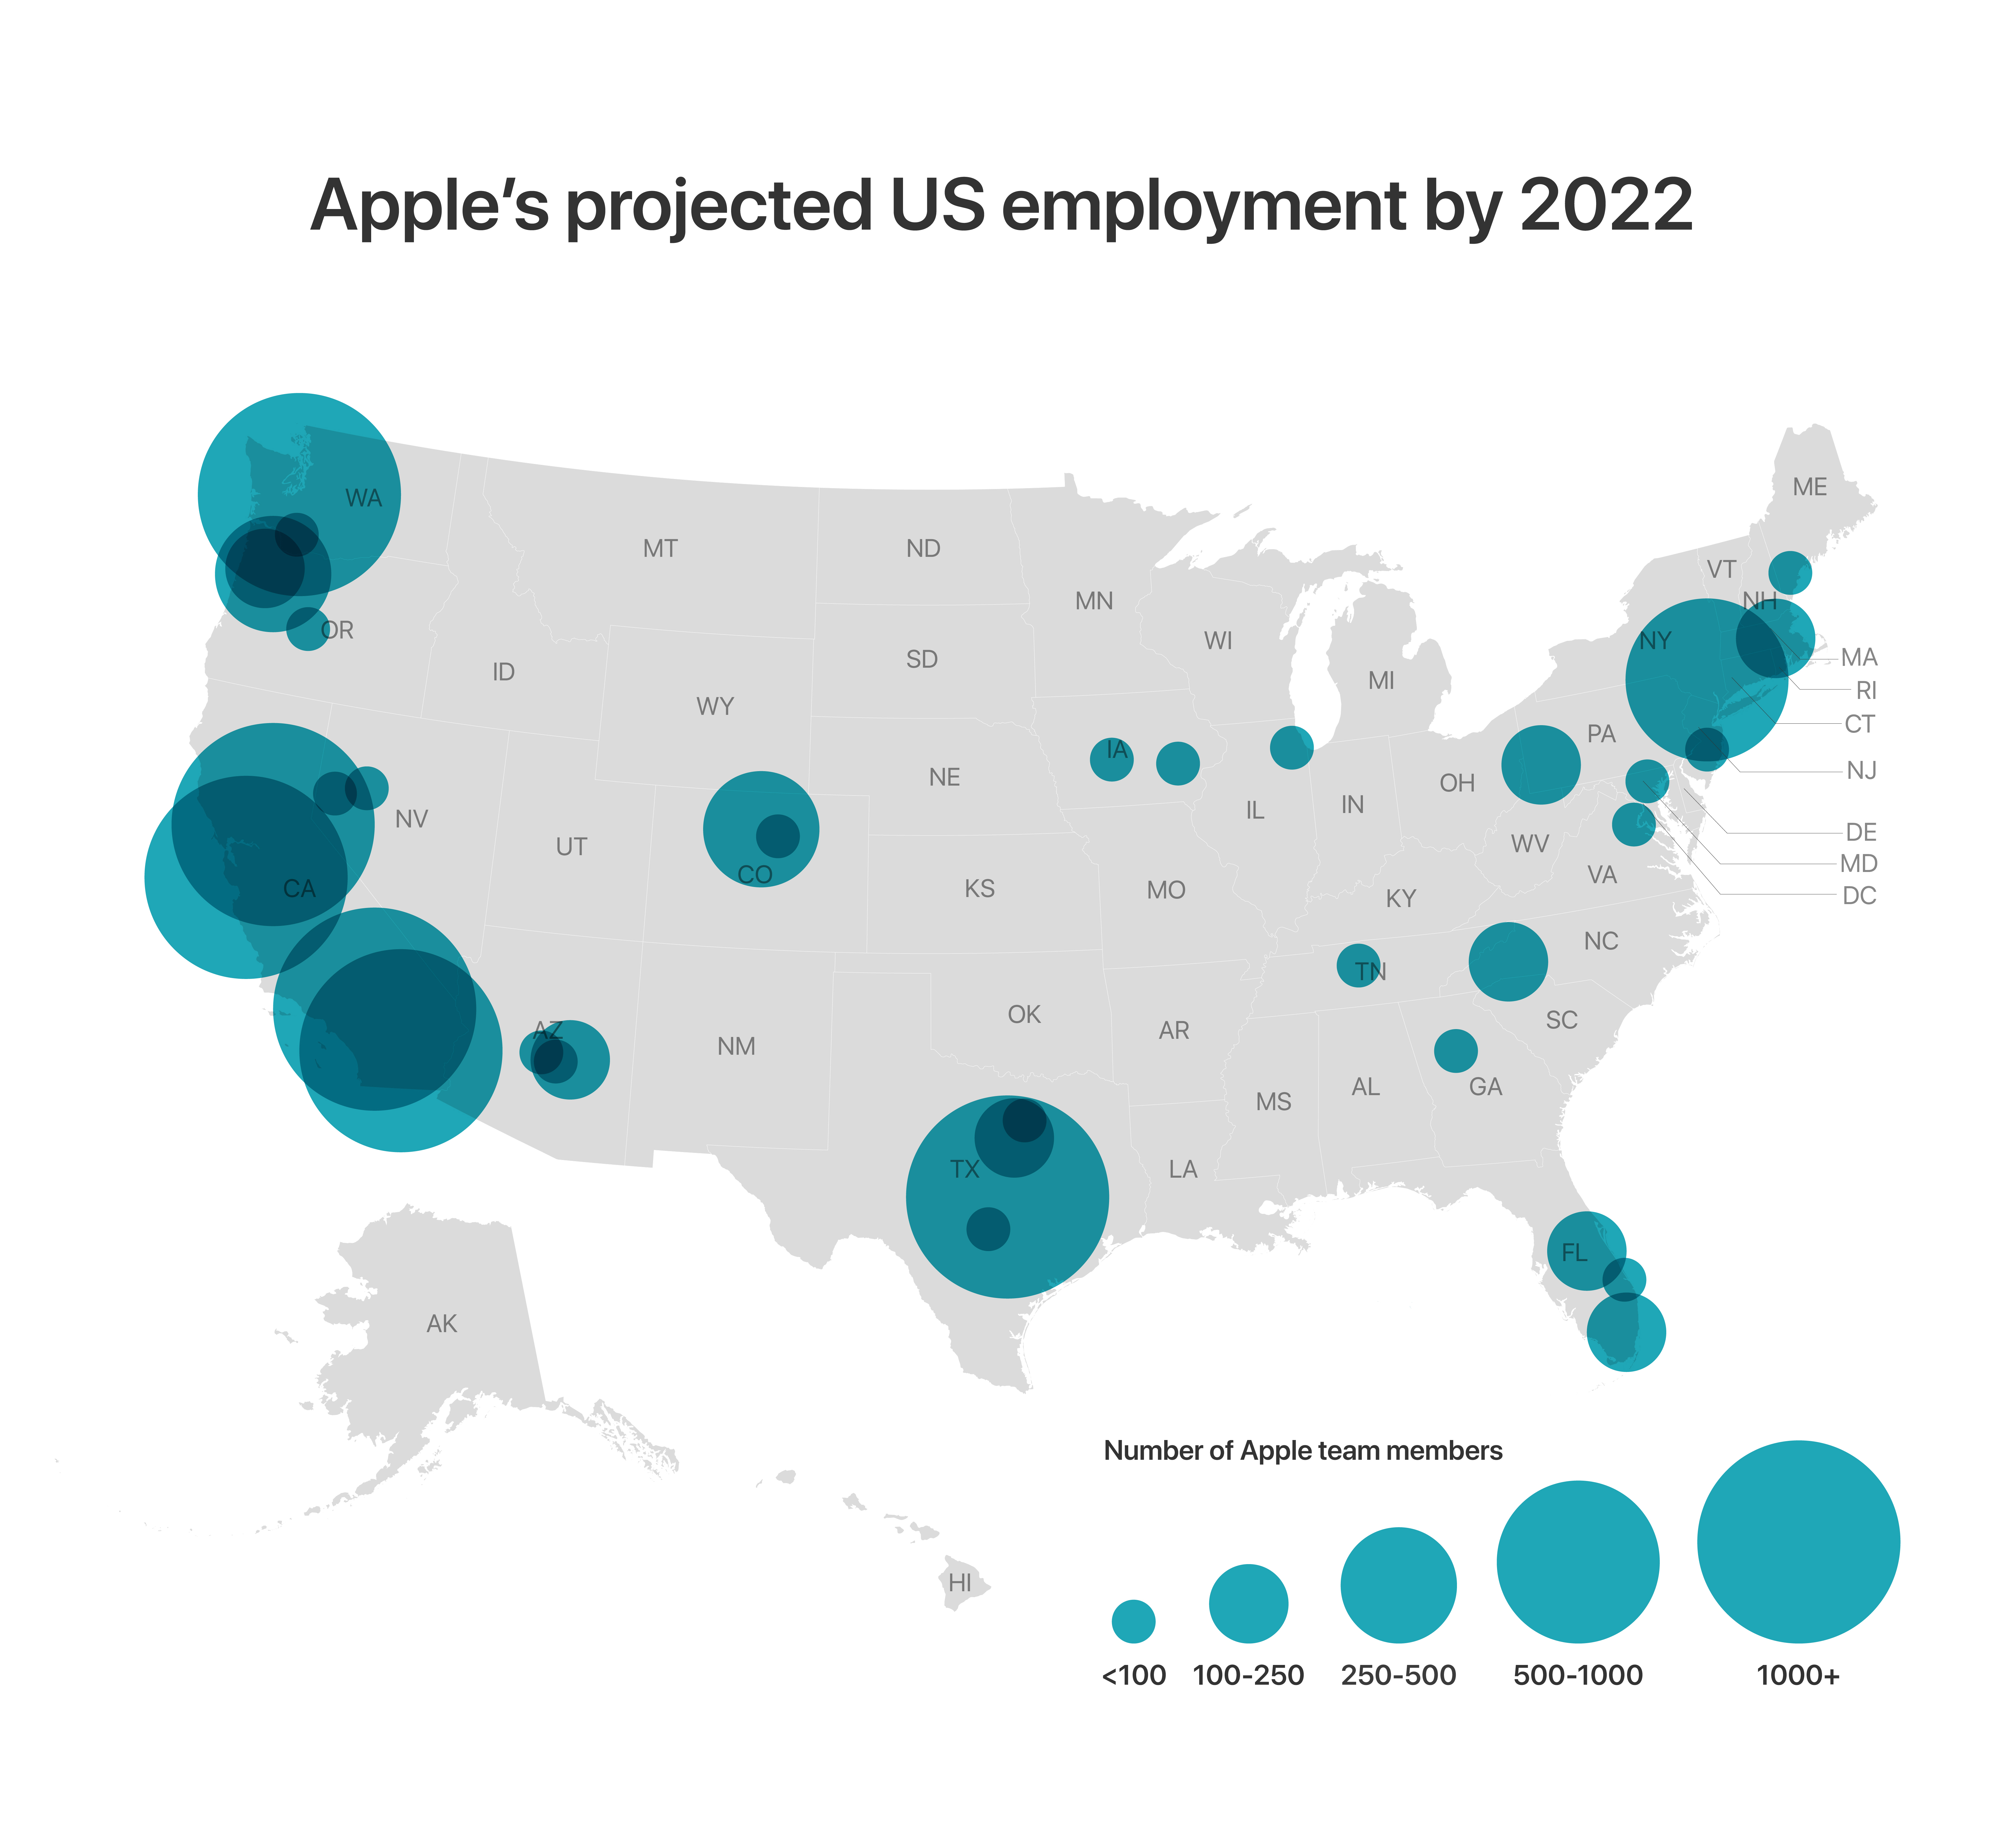 apple's US projected employment